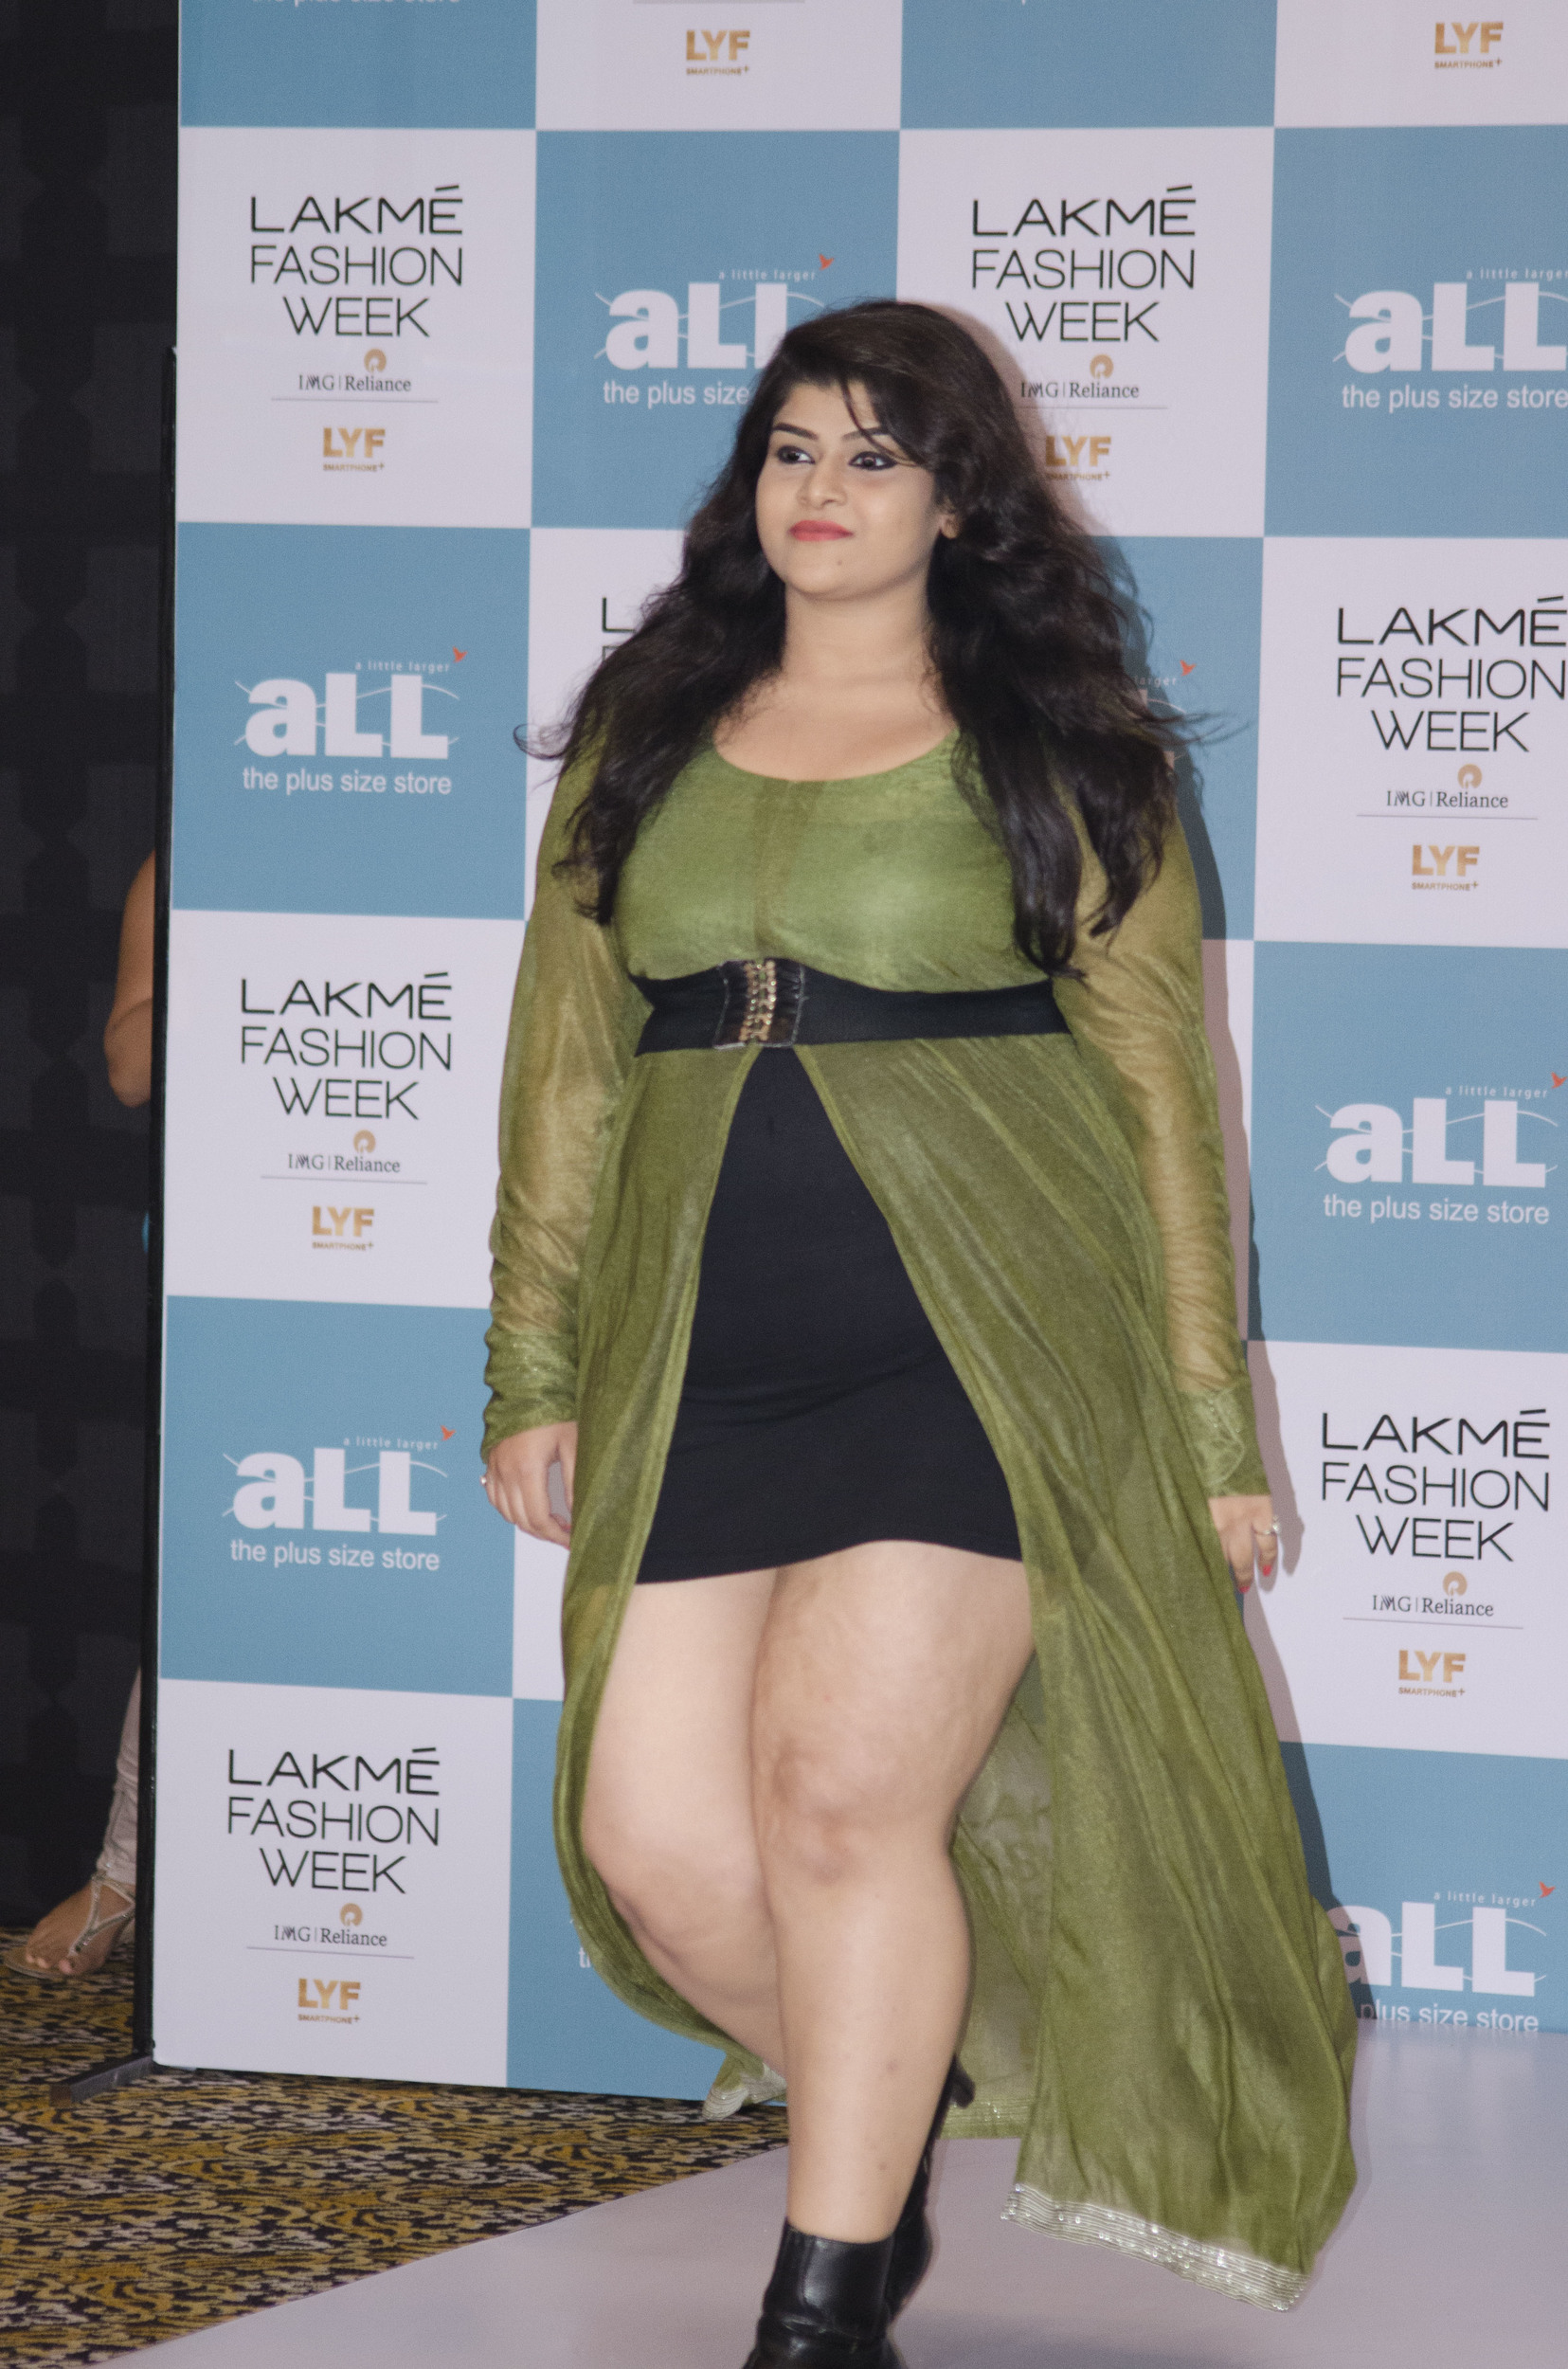 photos: winners of lakmé fashion week's first plus size model